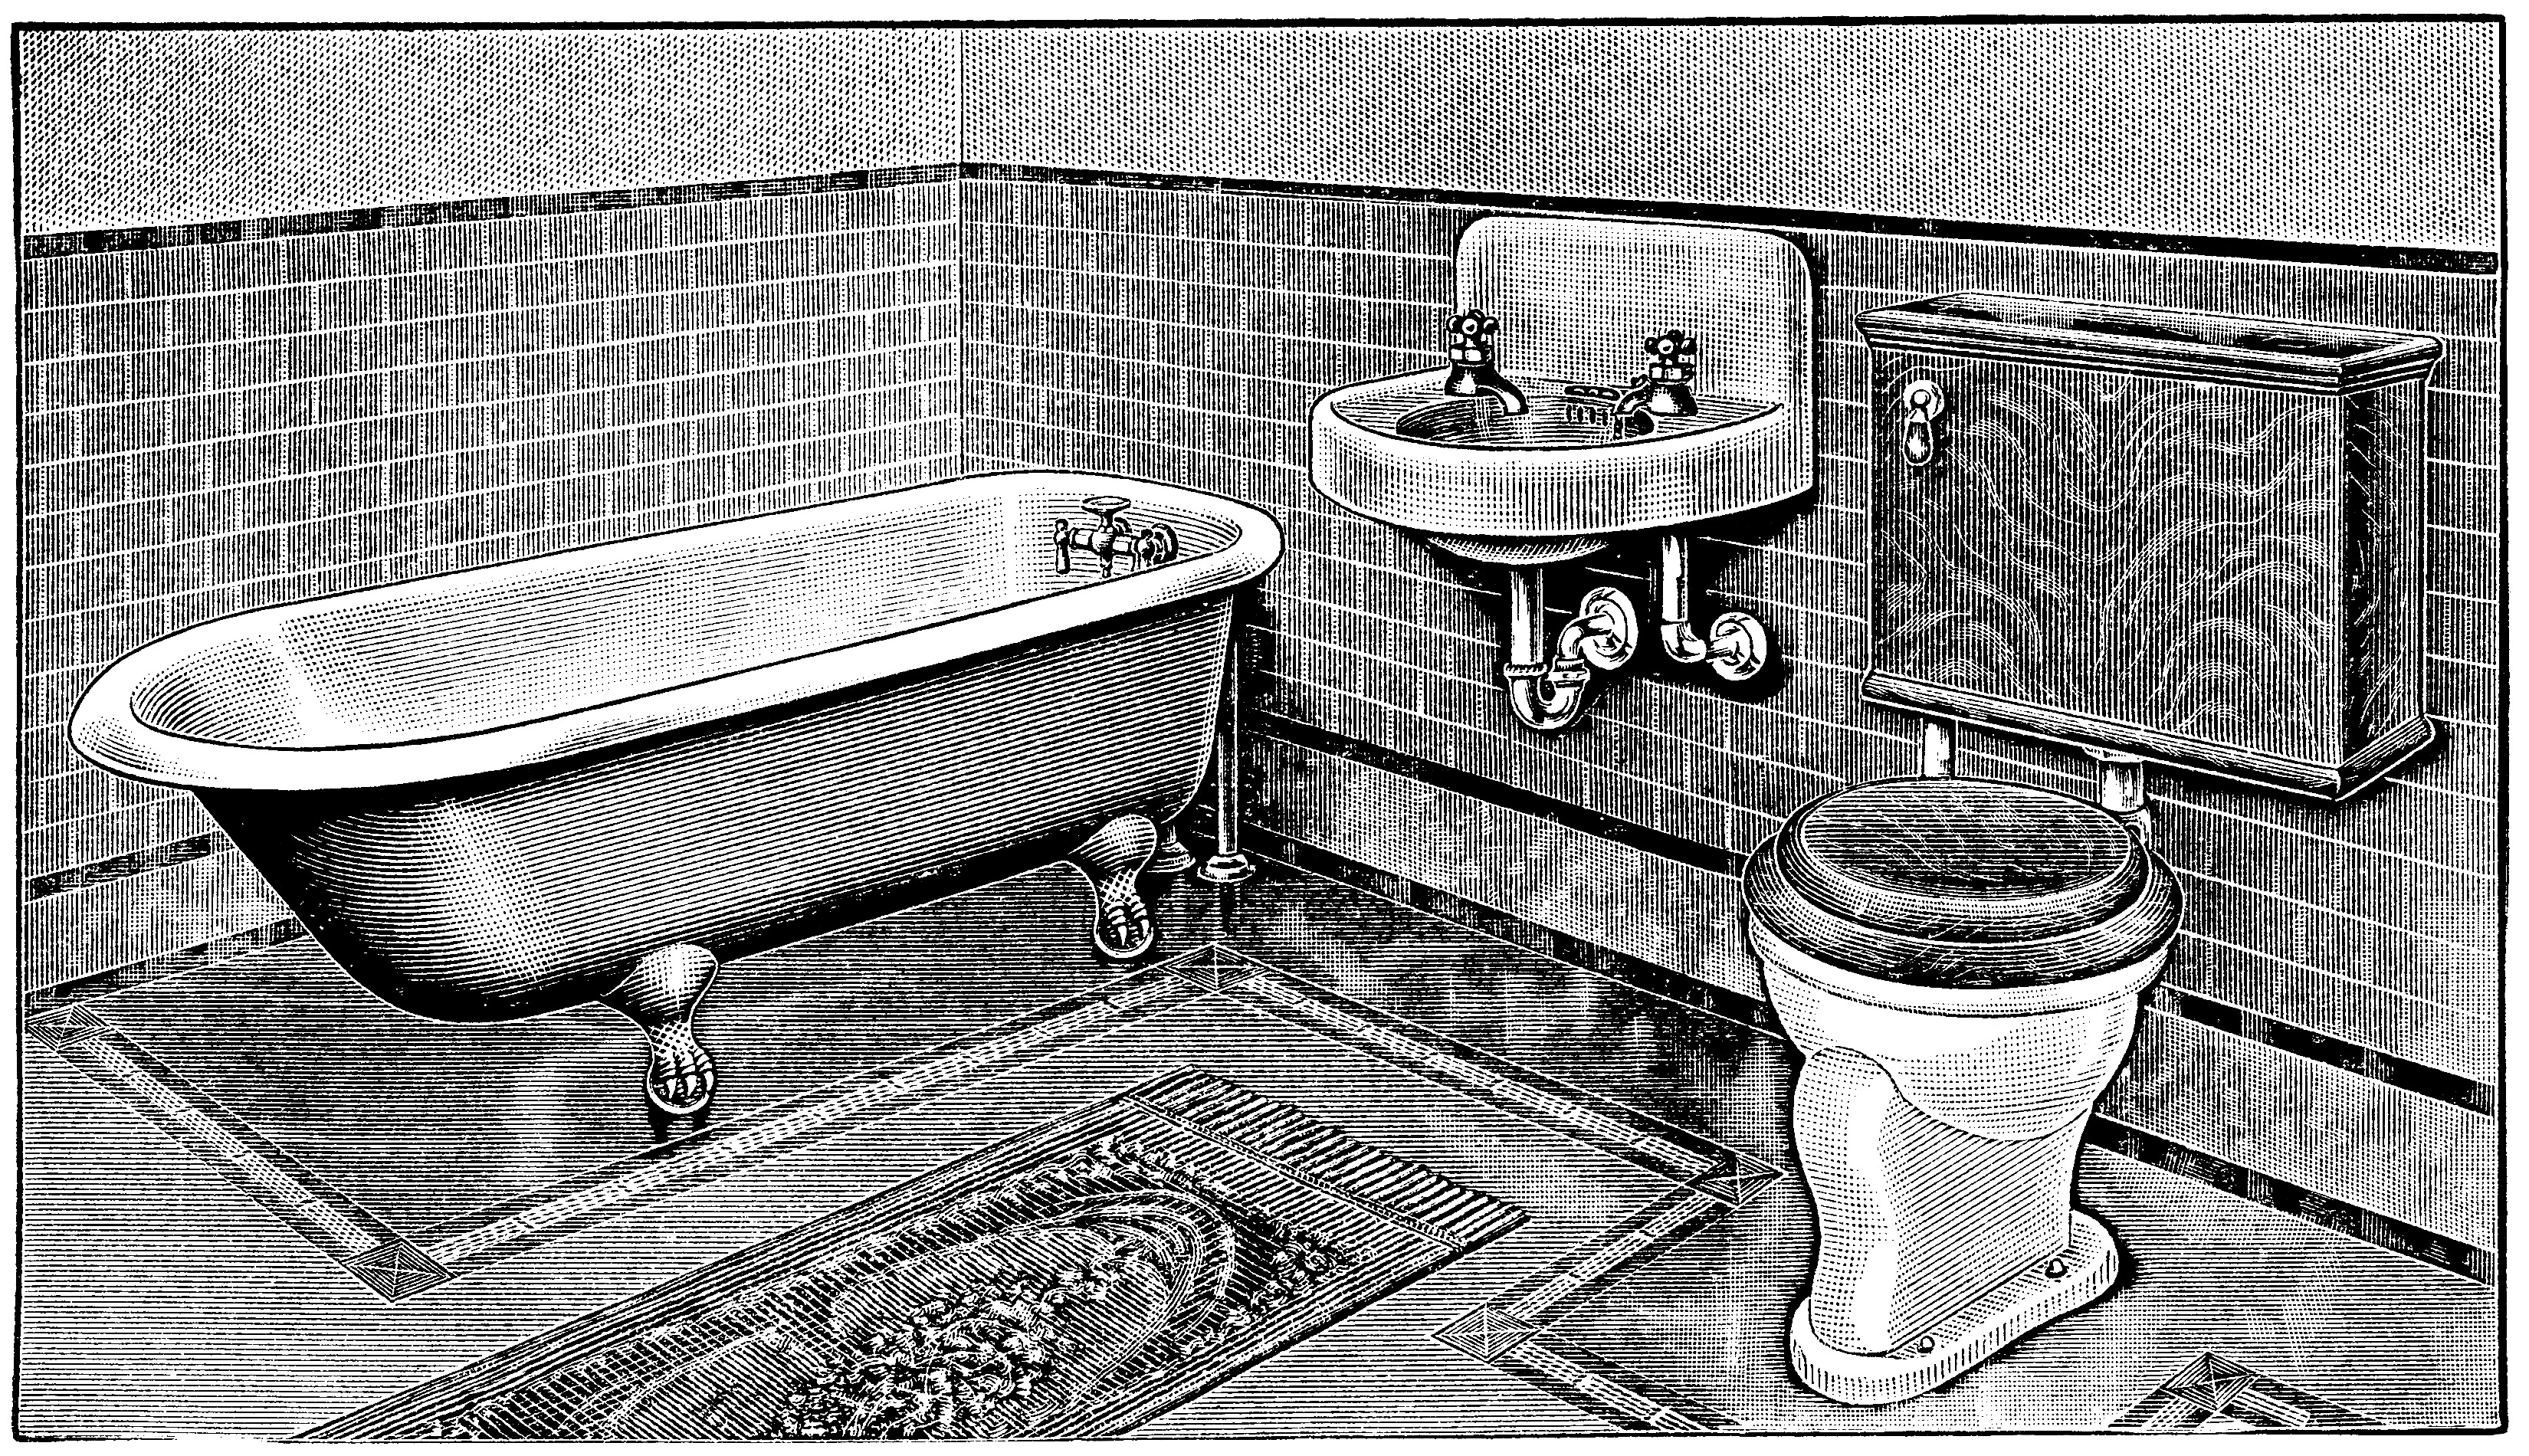 Bathroom clipart black and white - Here Is A Black And White Clip Art Version Vintage Bathroom Bathroom Clip Art Claw Foot Tub Illus Antique Toilet Restroom